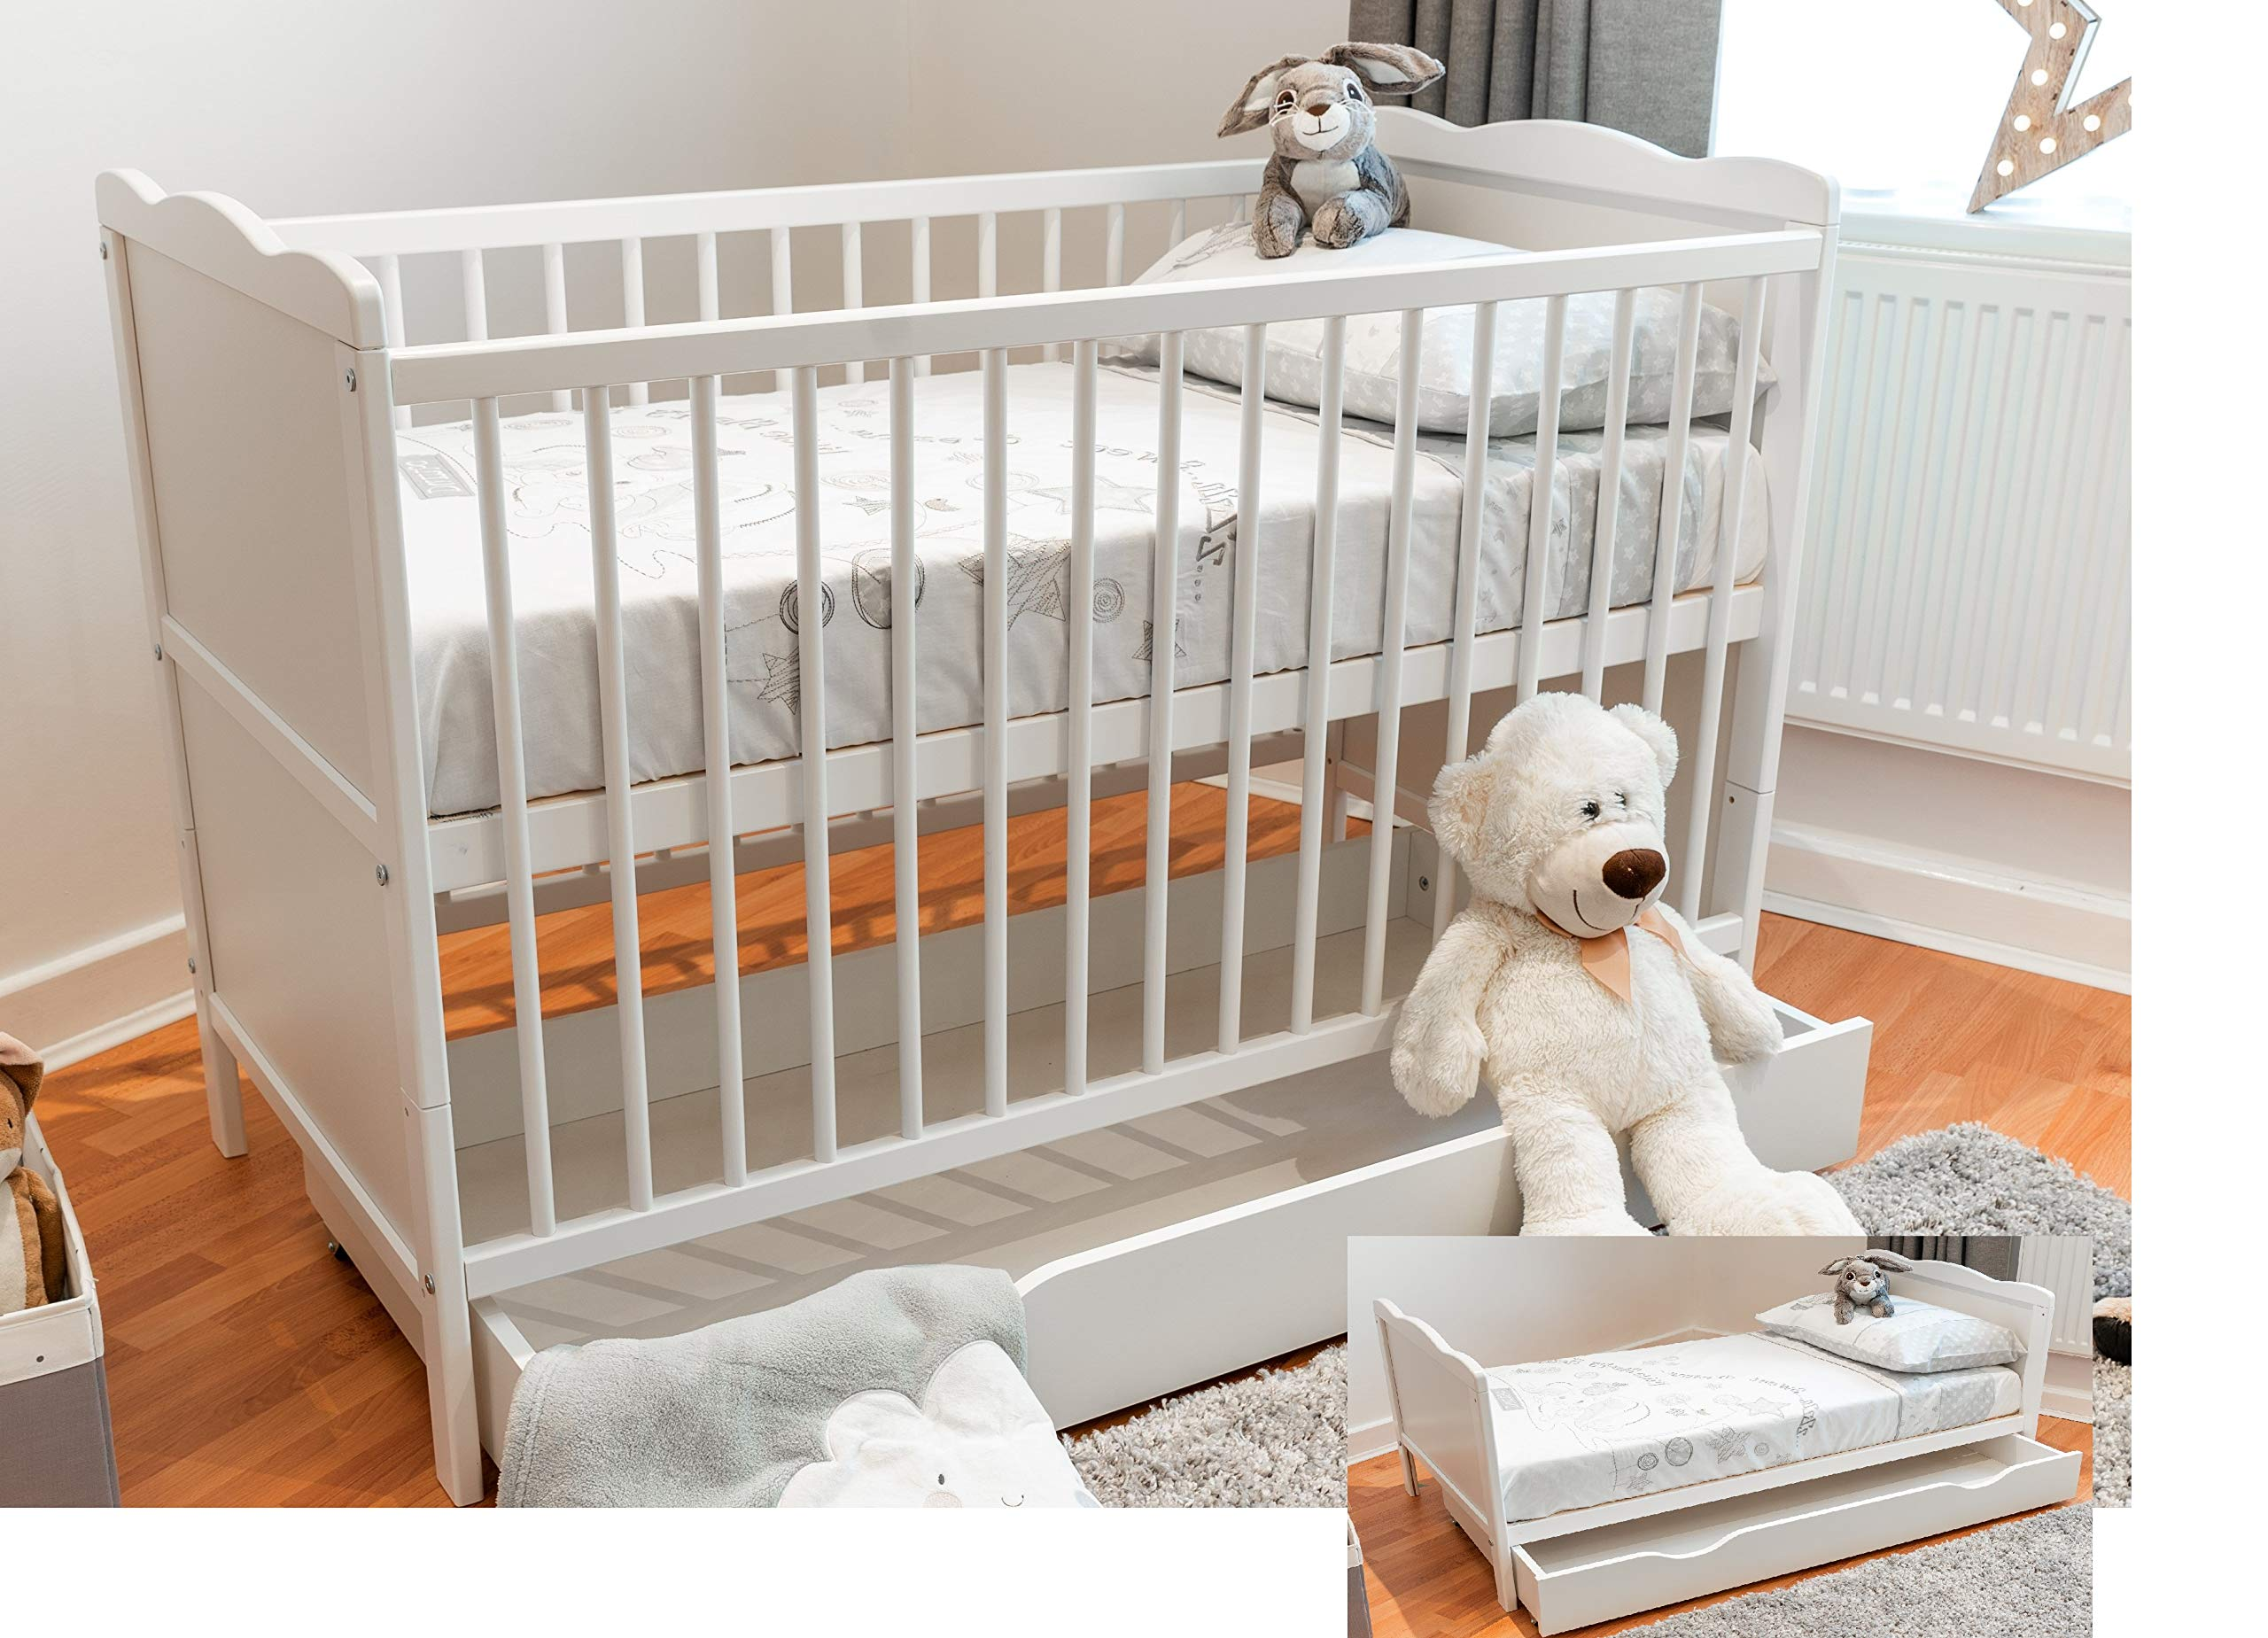 White Cot Bed 140x70cm with Cotbed Sprung Mattress Converts into a Junior Bed